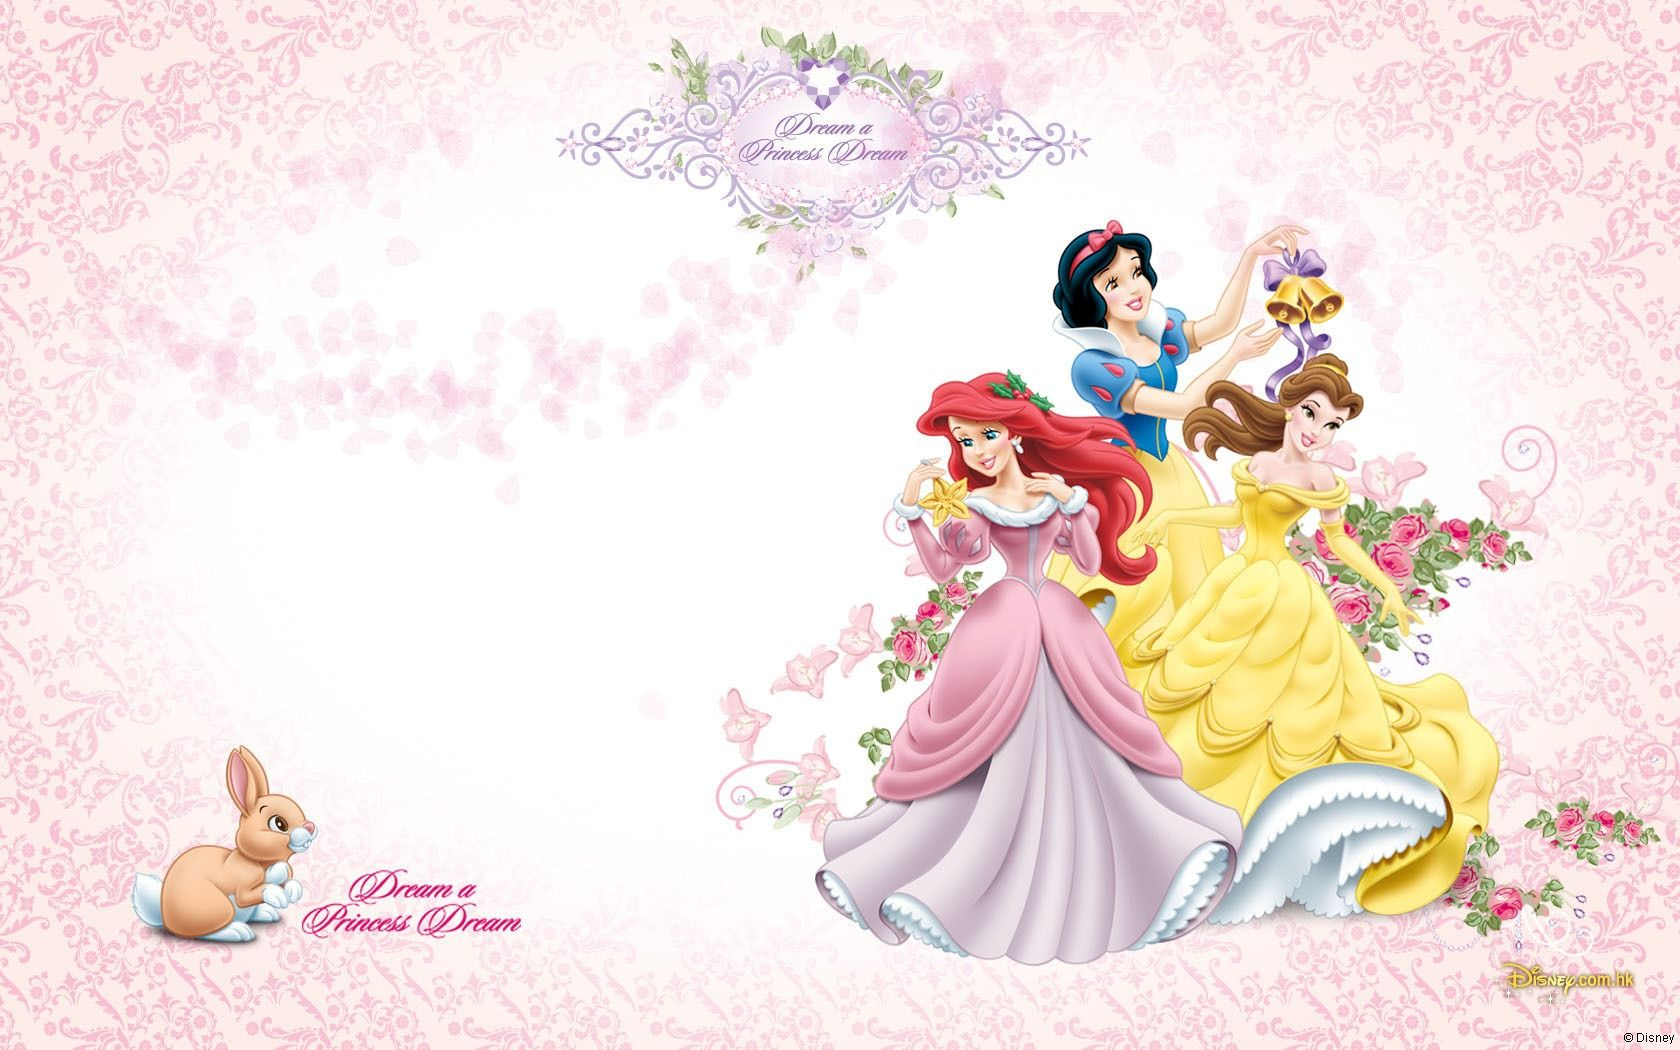 Disney Princess Wallpaper 21 Picture Image Or Photo